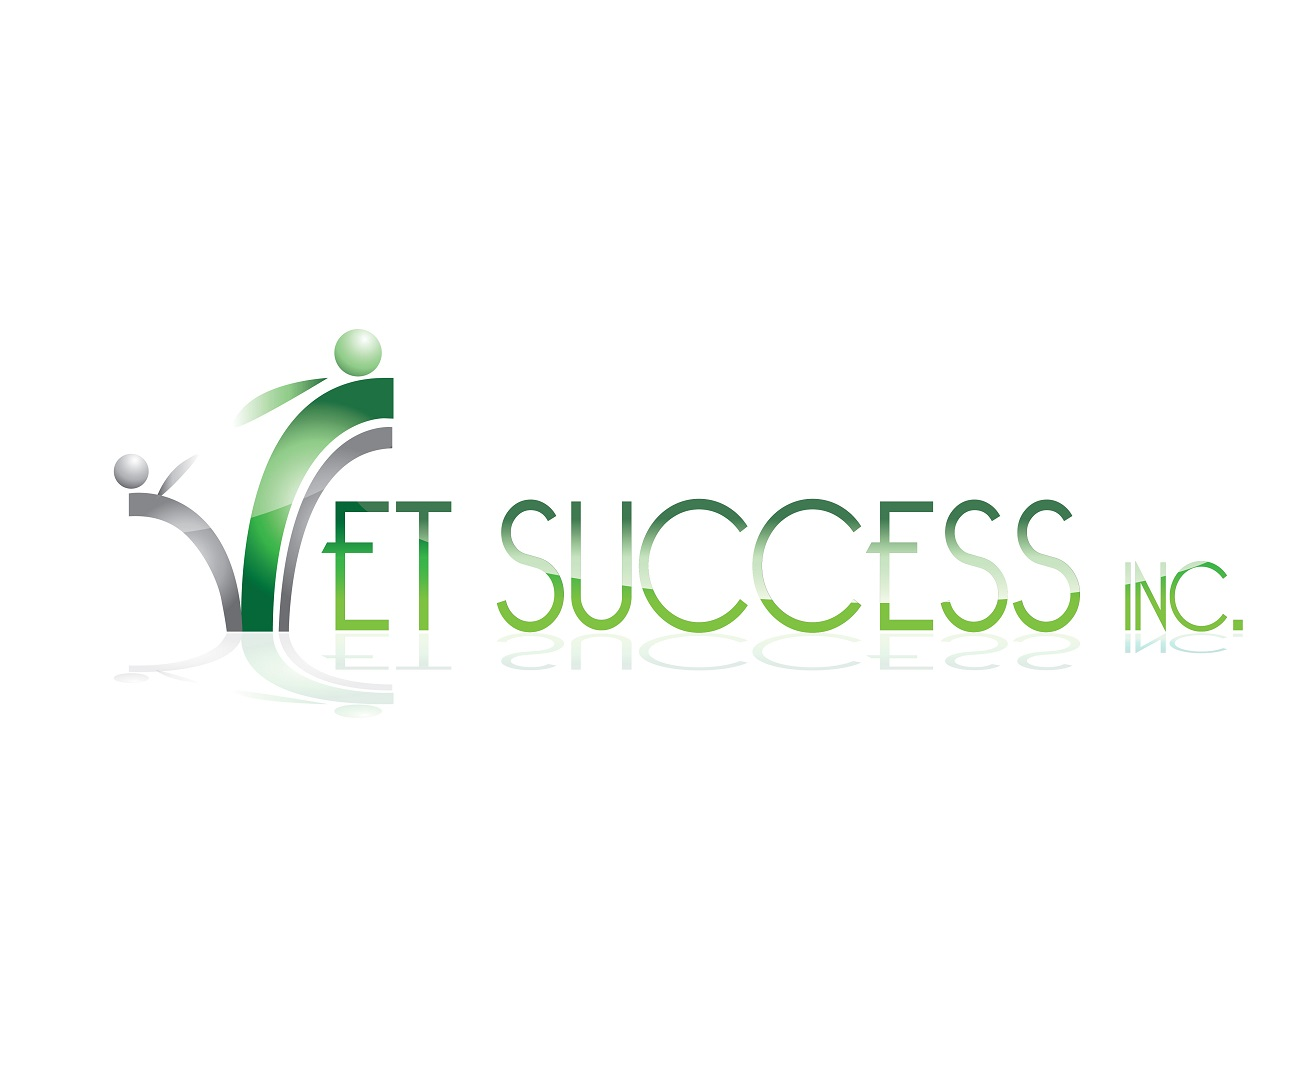 Logo Design by jhunzkie24 - Entry No. 51 in the Logo Design Contest Imaginative Logo Design for Vet Success Inc..